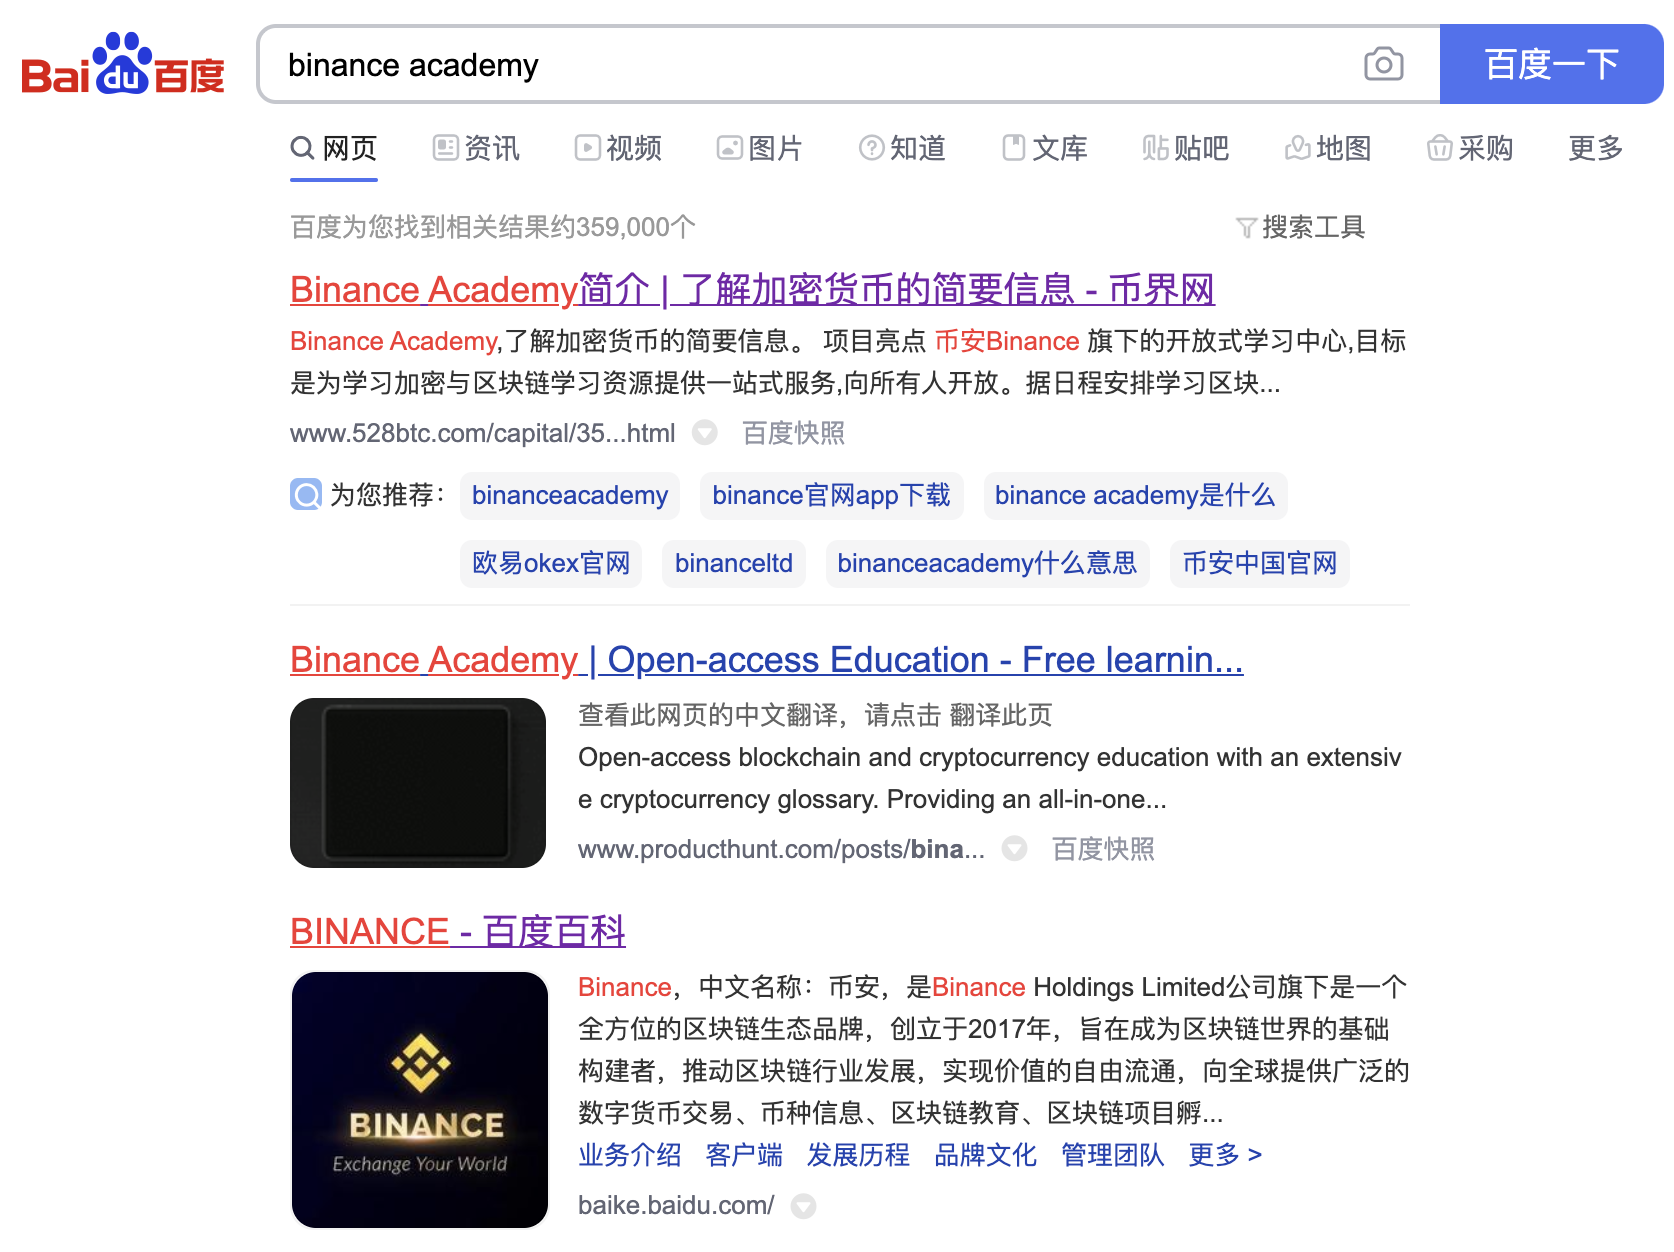 Chinese search engines block results for top crypto exchanges